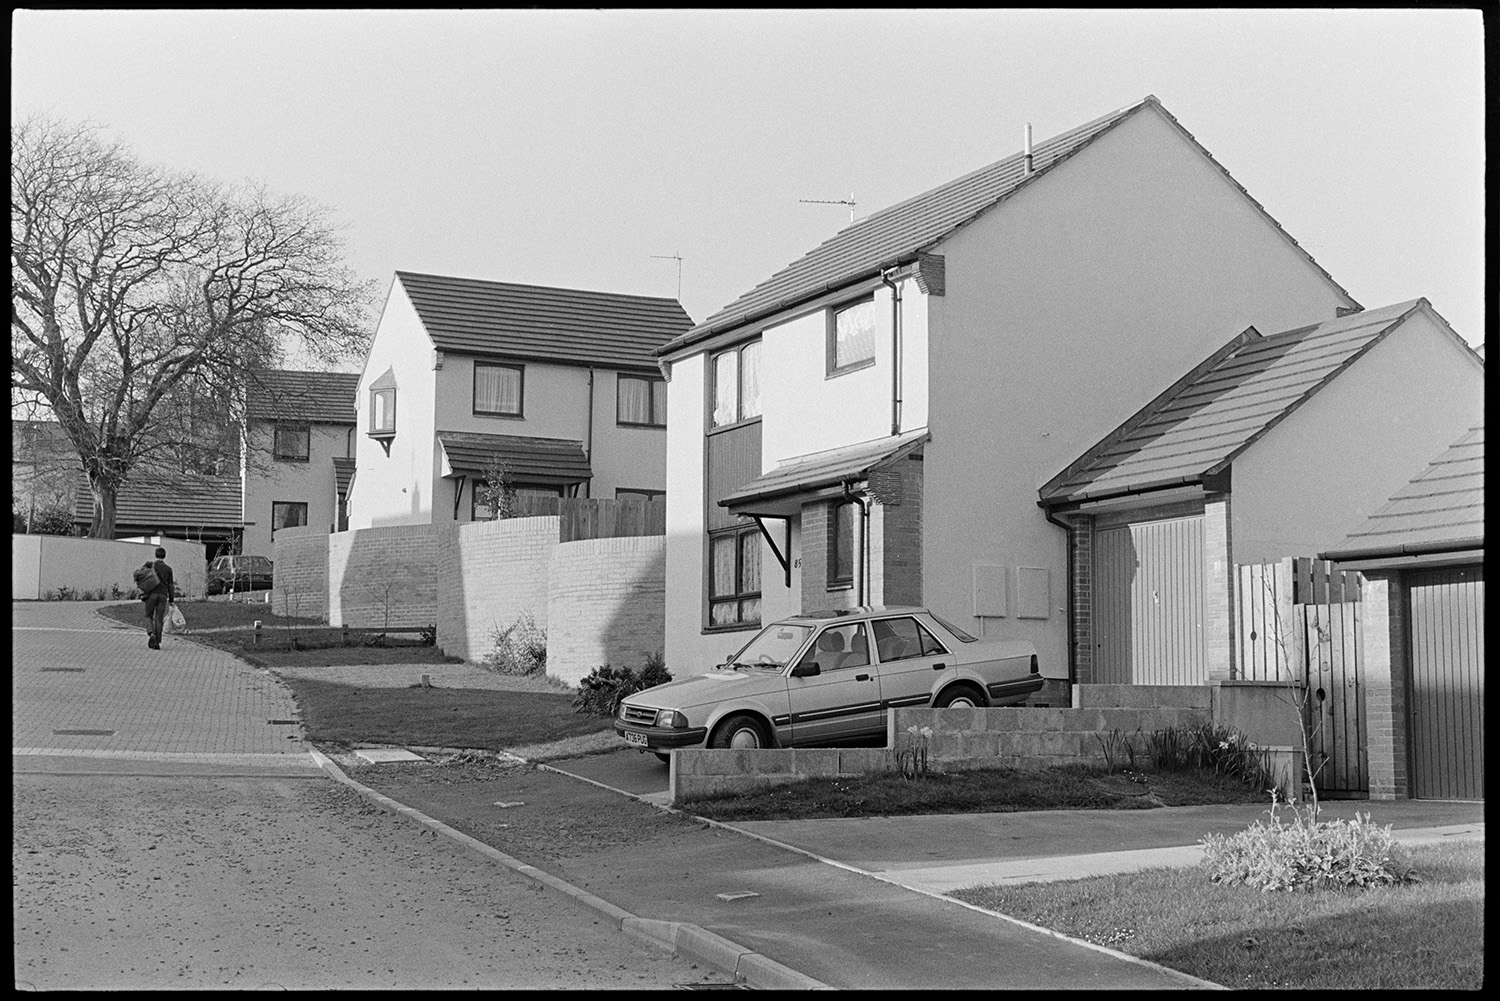 New housing estate. <br /> [Houses on a new housing estate in South Molton. A car is parked on the driveway outside one house and a person is walking up the hill of the estate in the background.]